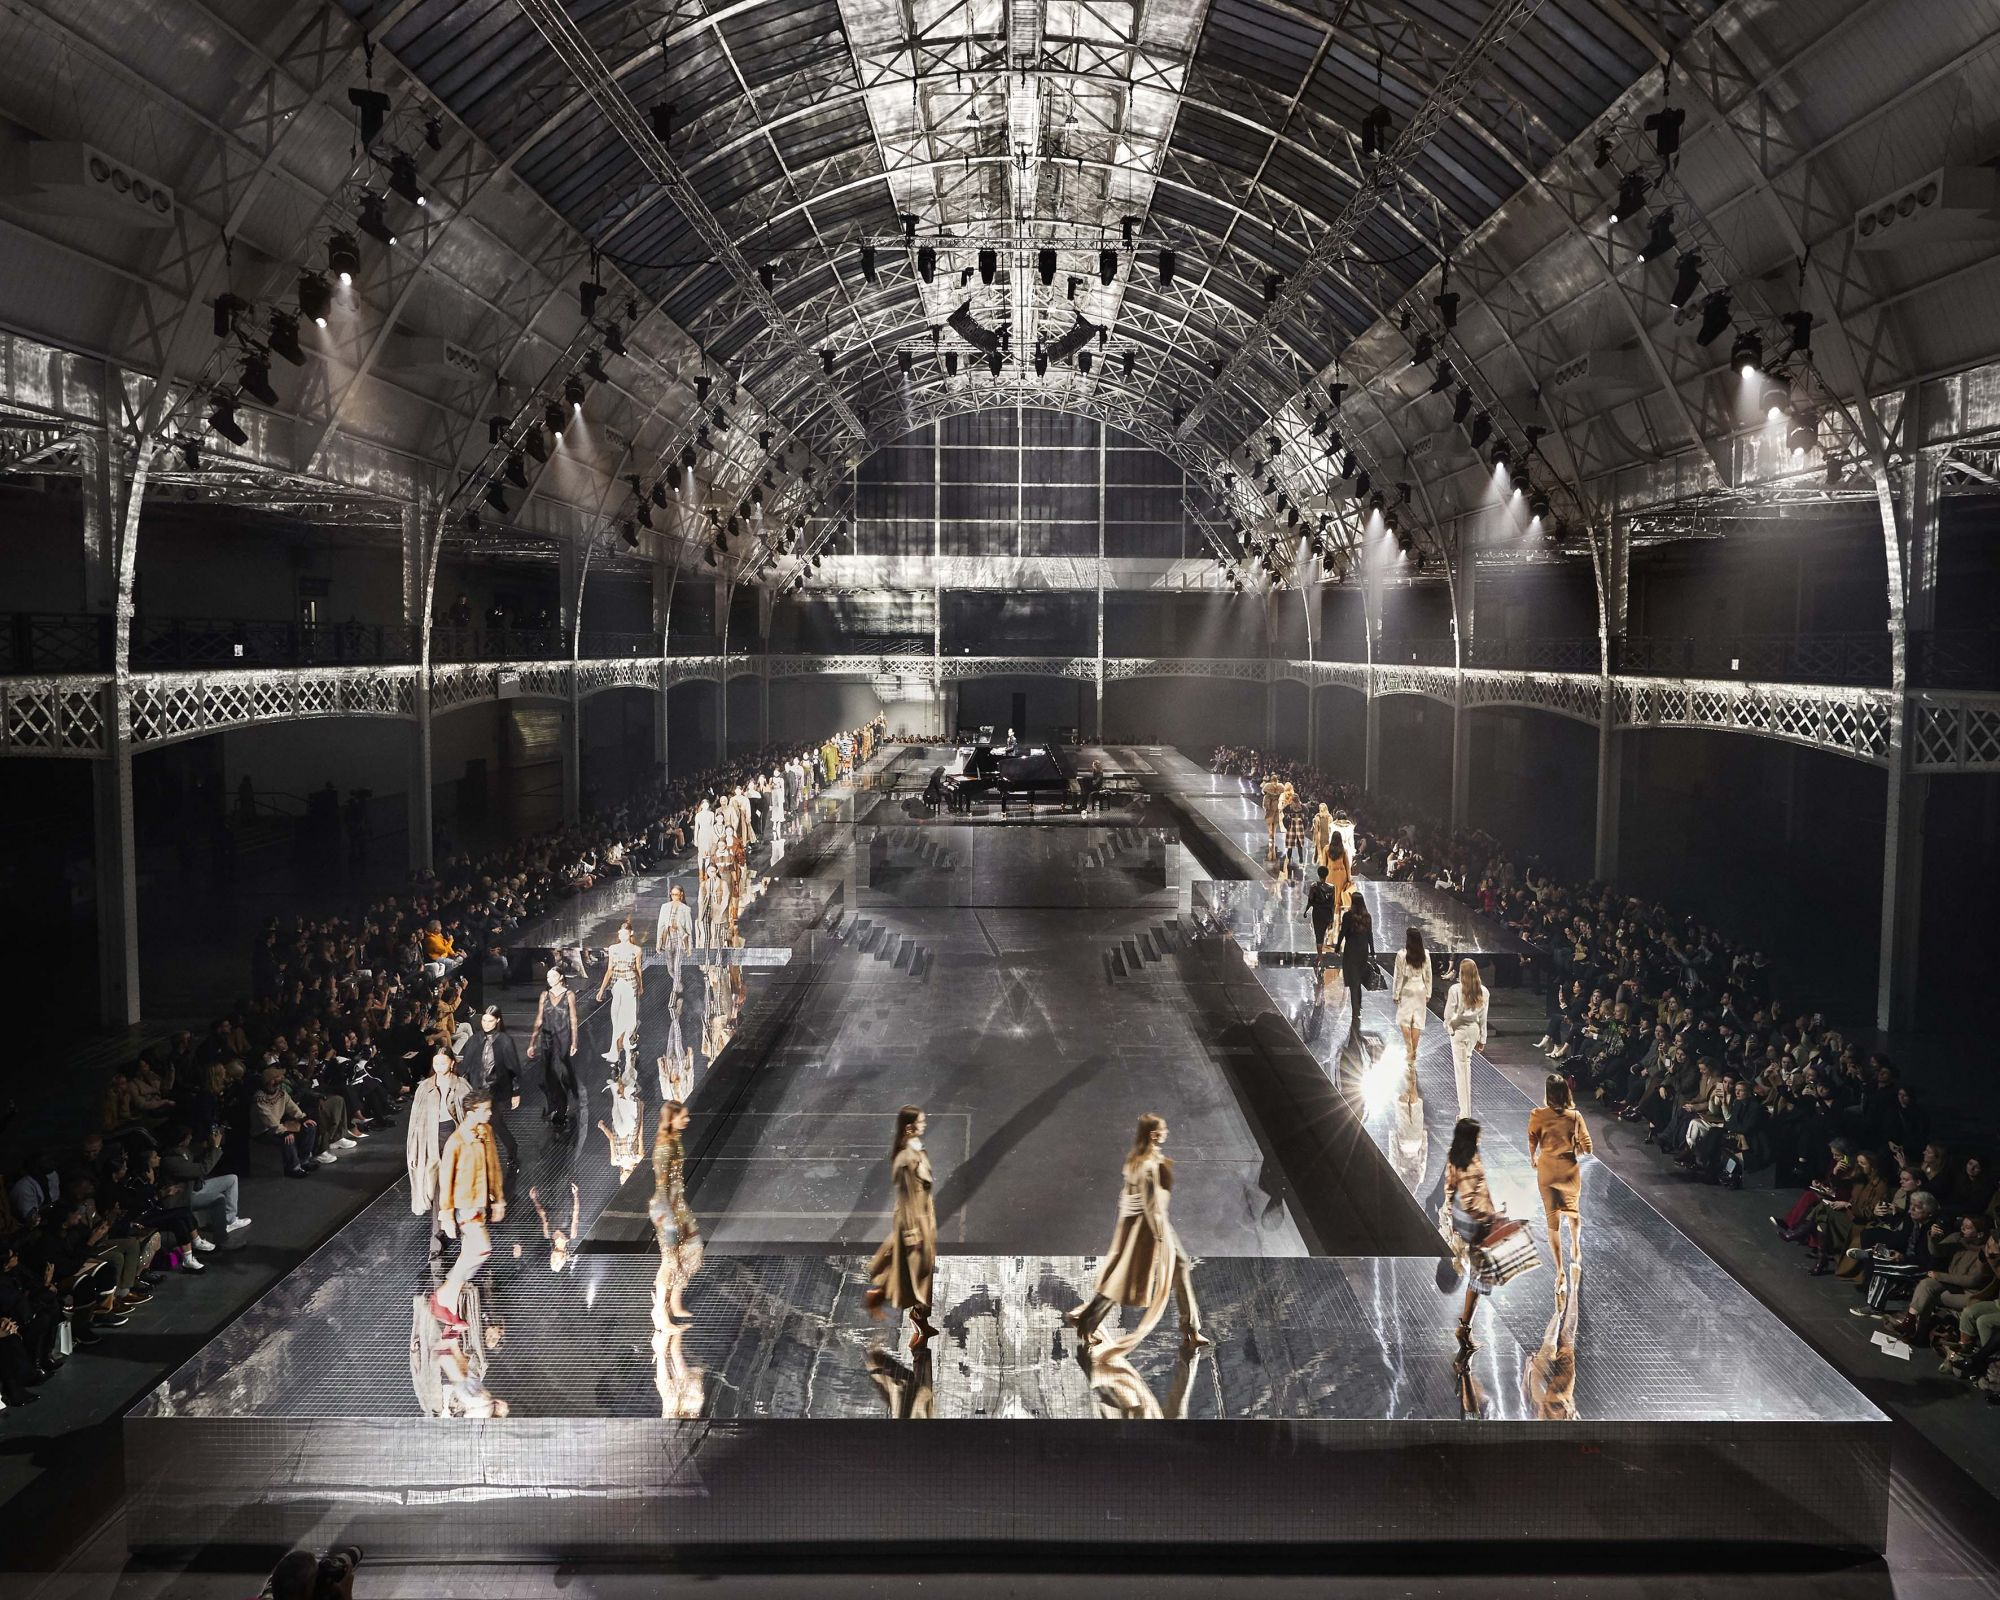 Burberry's Autumn/Winter 2020 Runway Show Was Certified Carbon Neutral